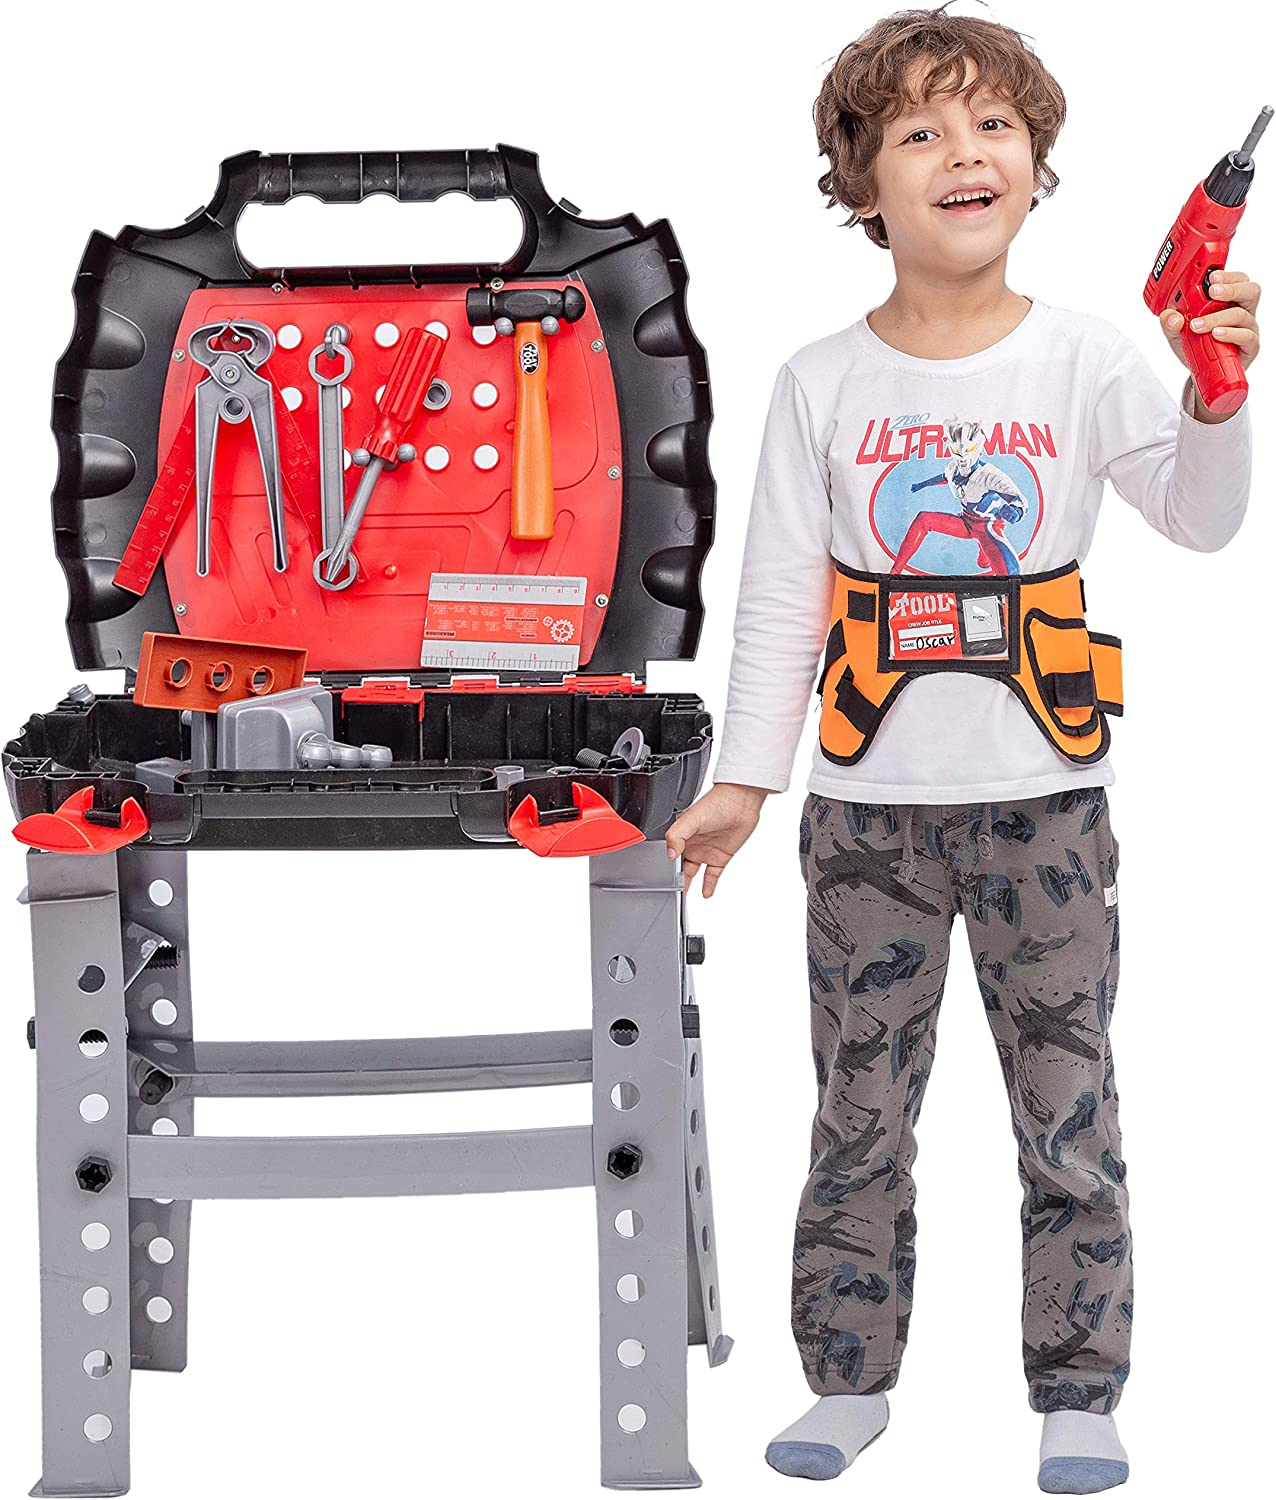 JOYIN 55 Pieces Workbench Tools Bench Toy Playset Kids Tool Work Shop Toy with Realistic Construction Tool and Accessories for Construction Workshop, Tool Bench Pretend Play